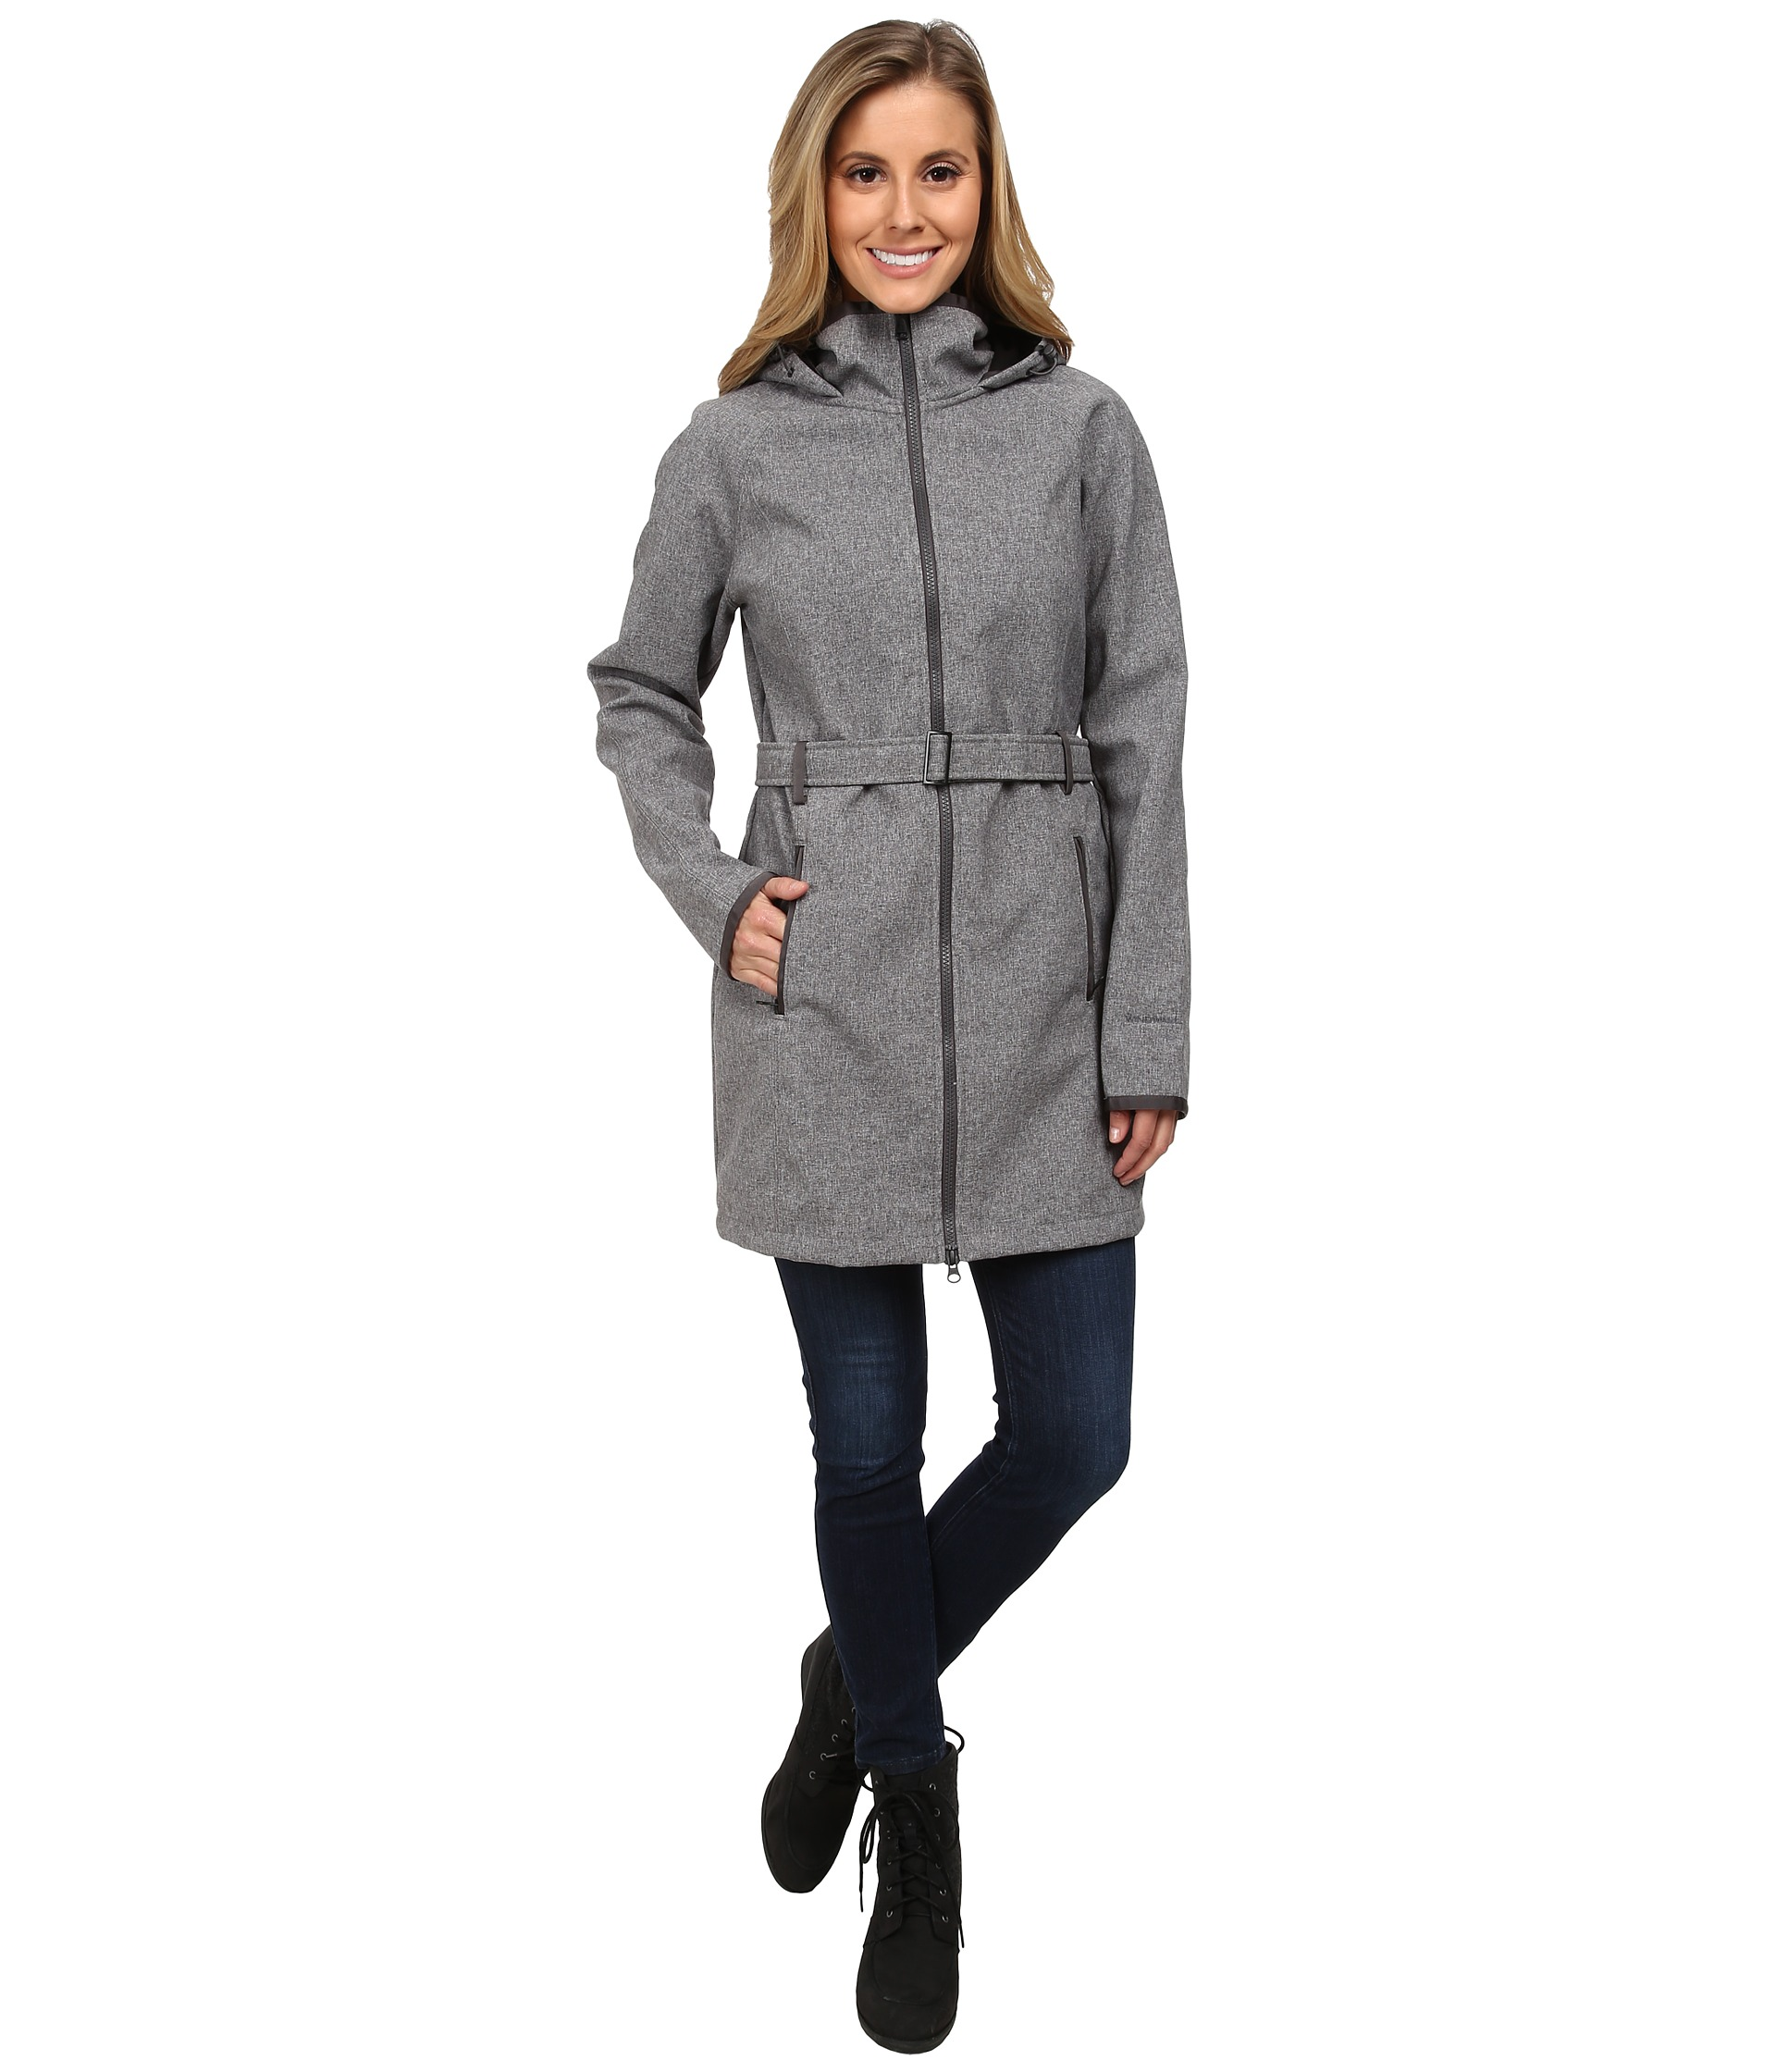 Coats & Outerwear, Gray, Women | Shipped Free at Zappos